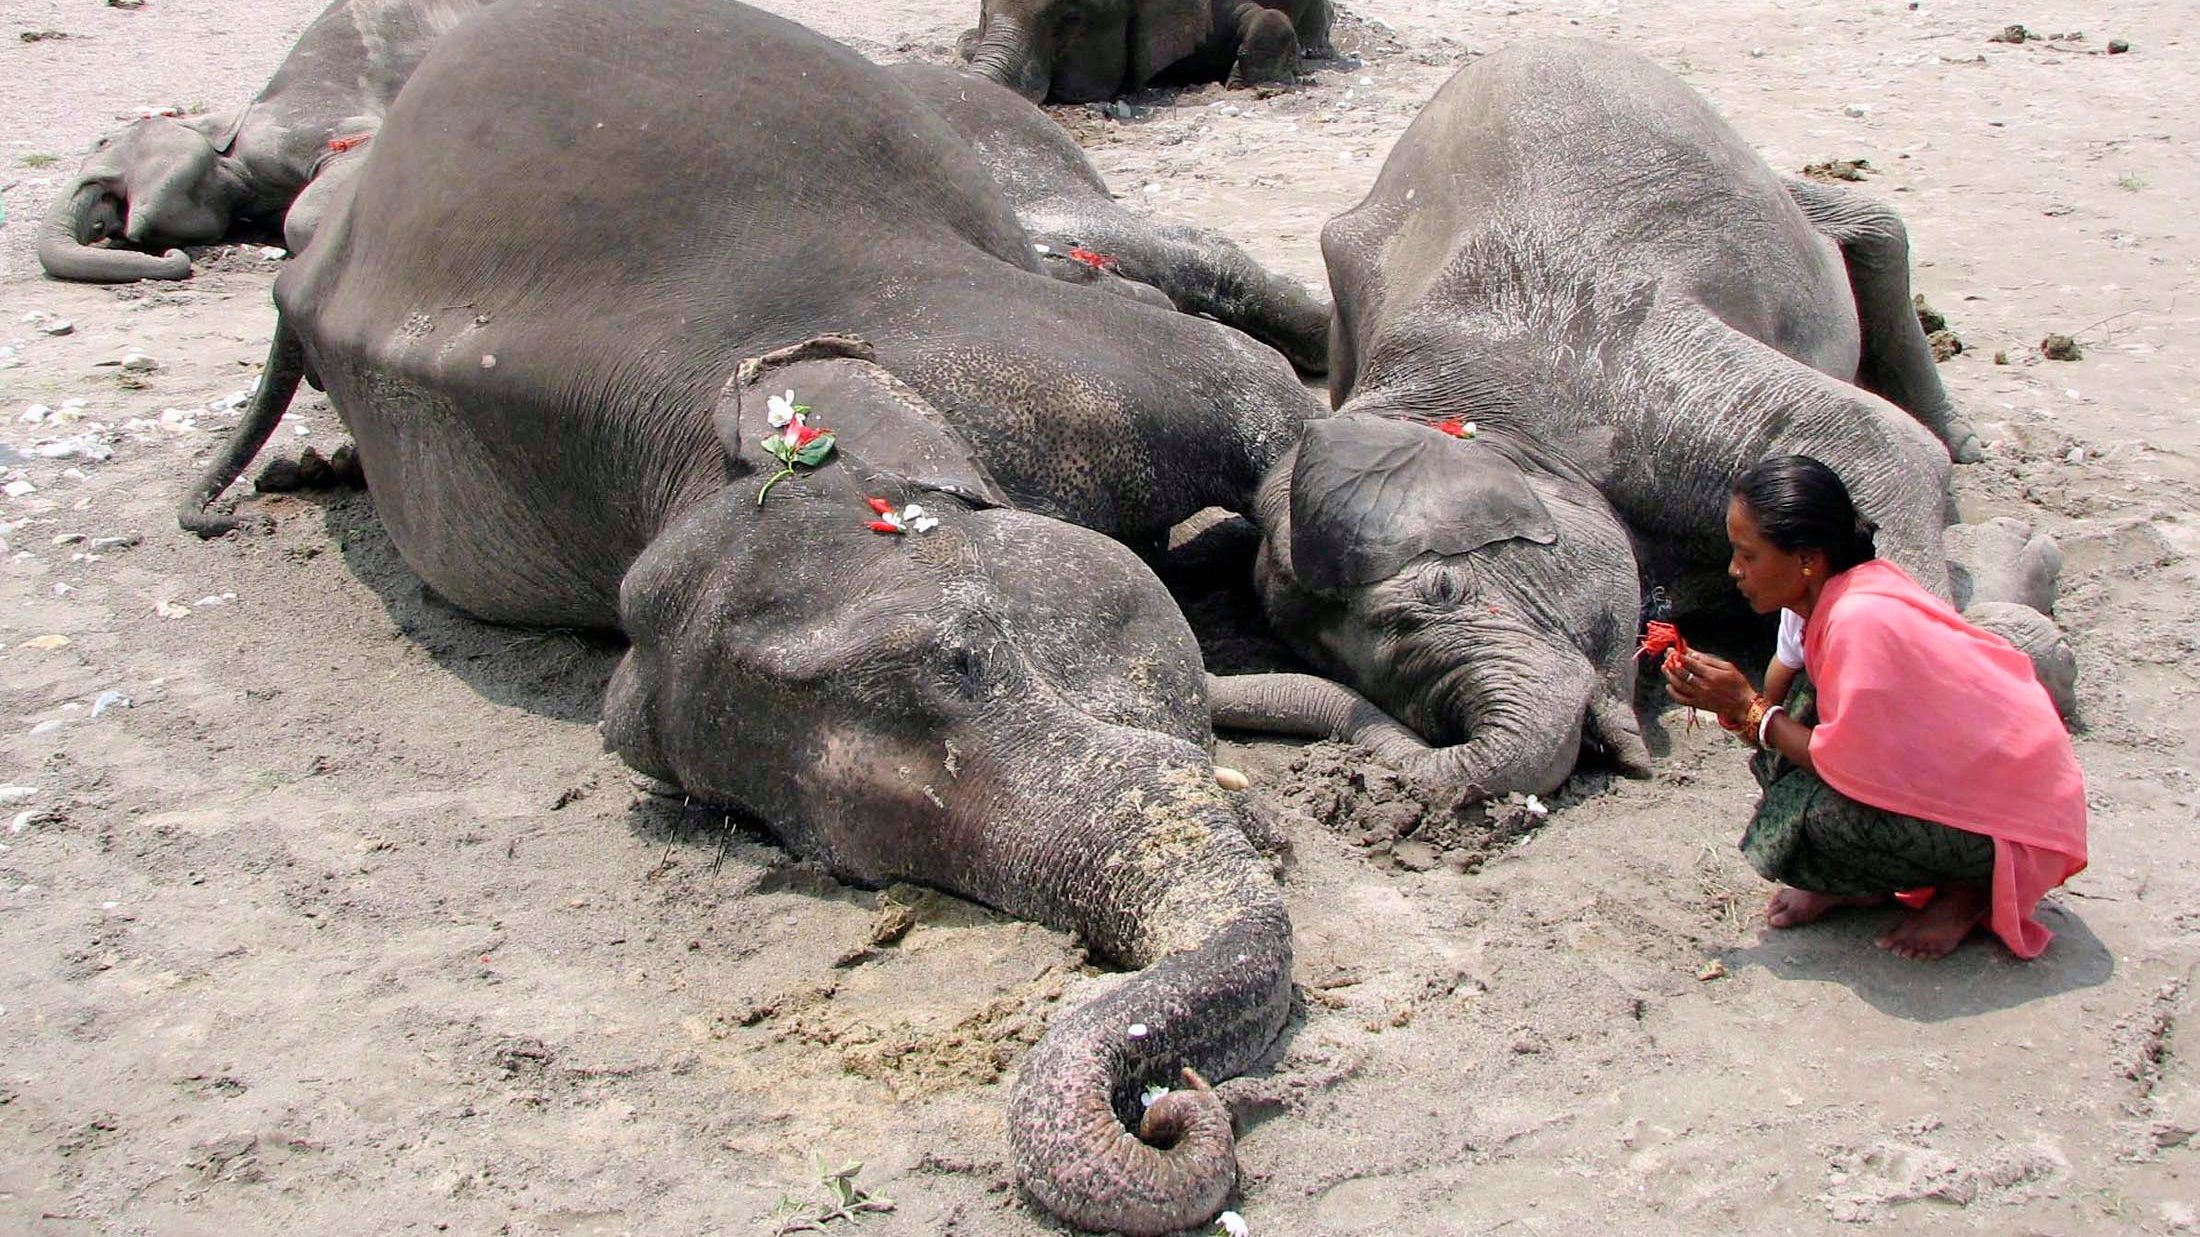 Heartbreaking photos that show how India is slowly killing its elephants